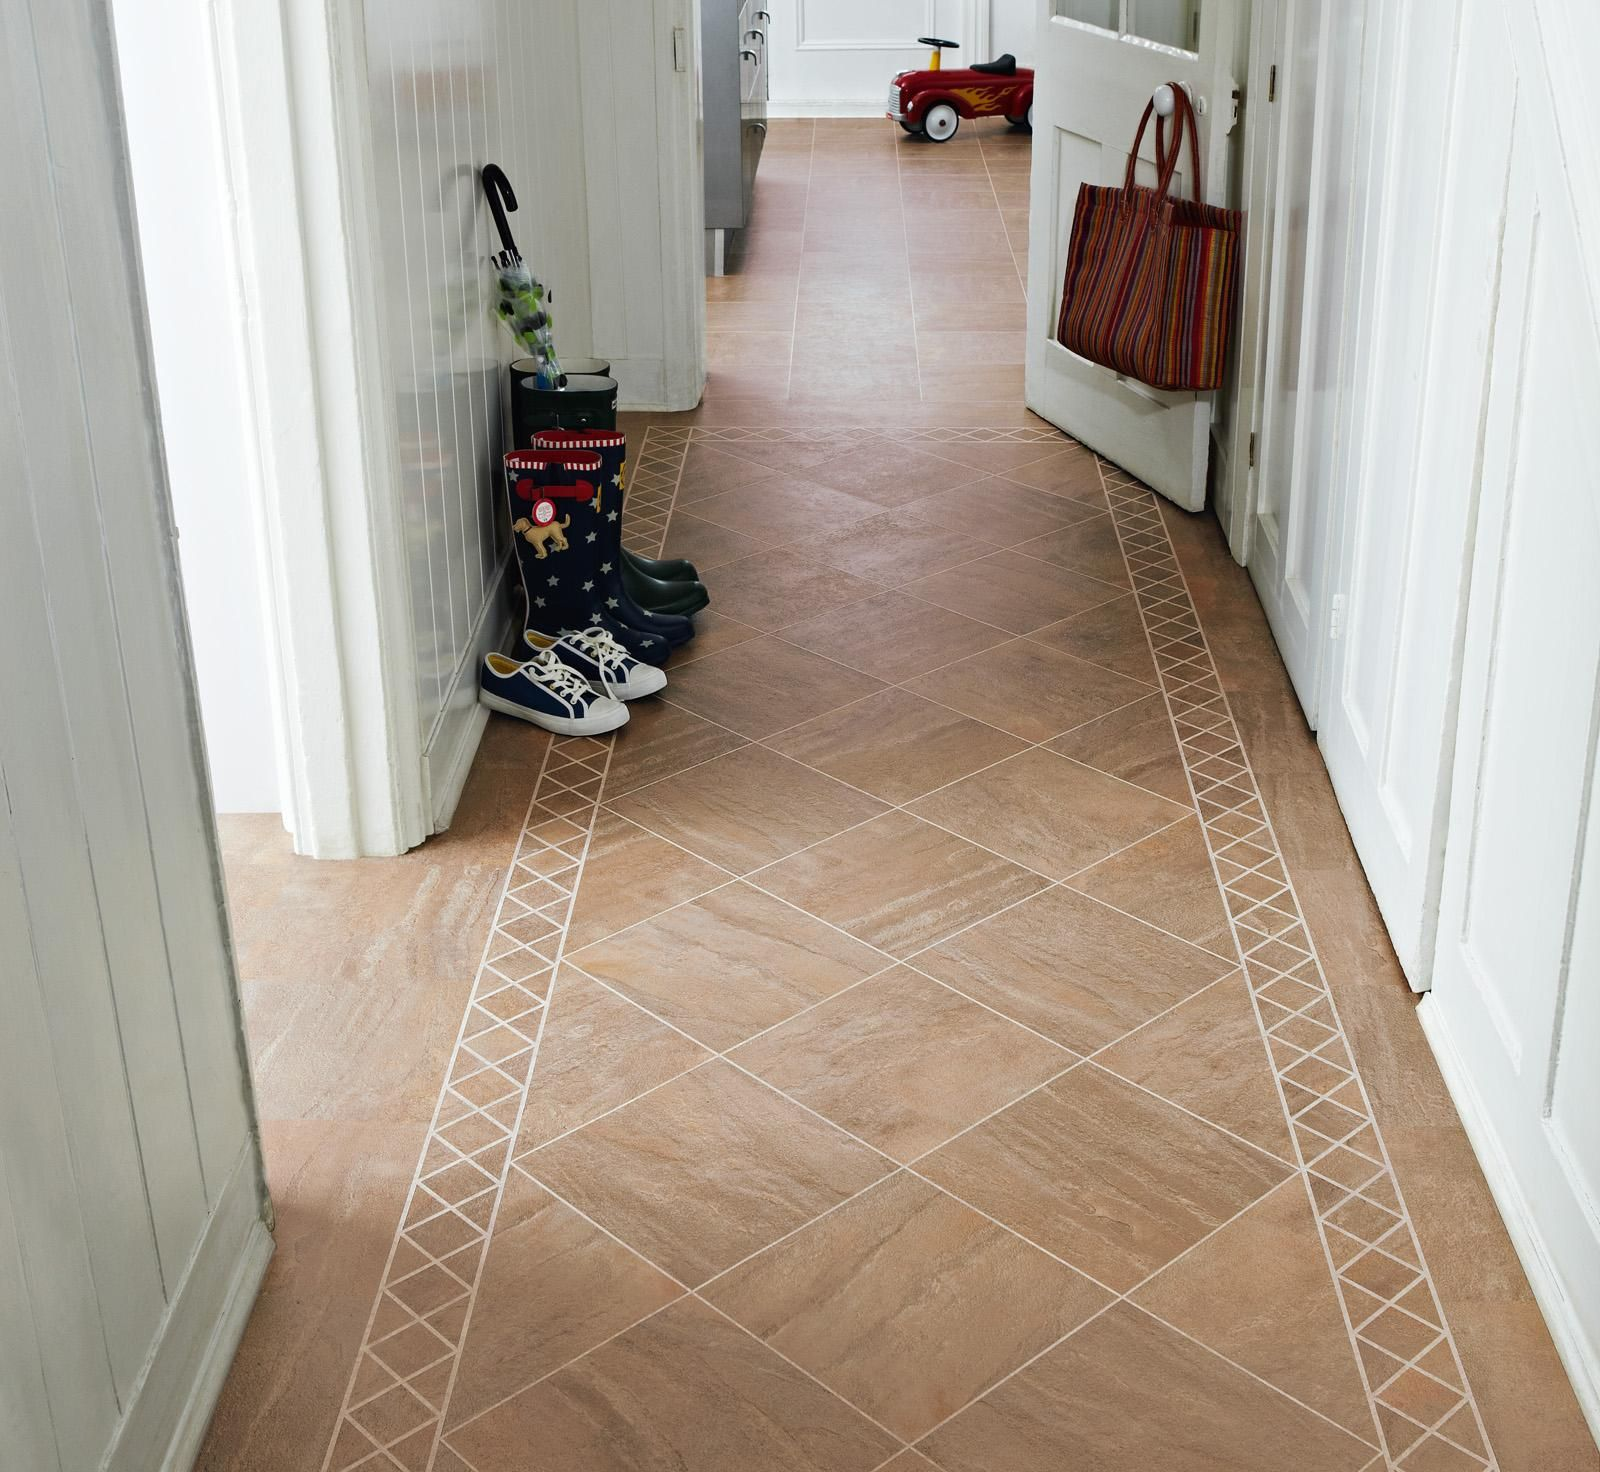 We can help you find the karndean flooring products to fit your hall with karndean knight tile jura slate lat at with portobello border and stone stripping dailygadgetfo Choice Image